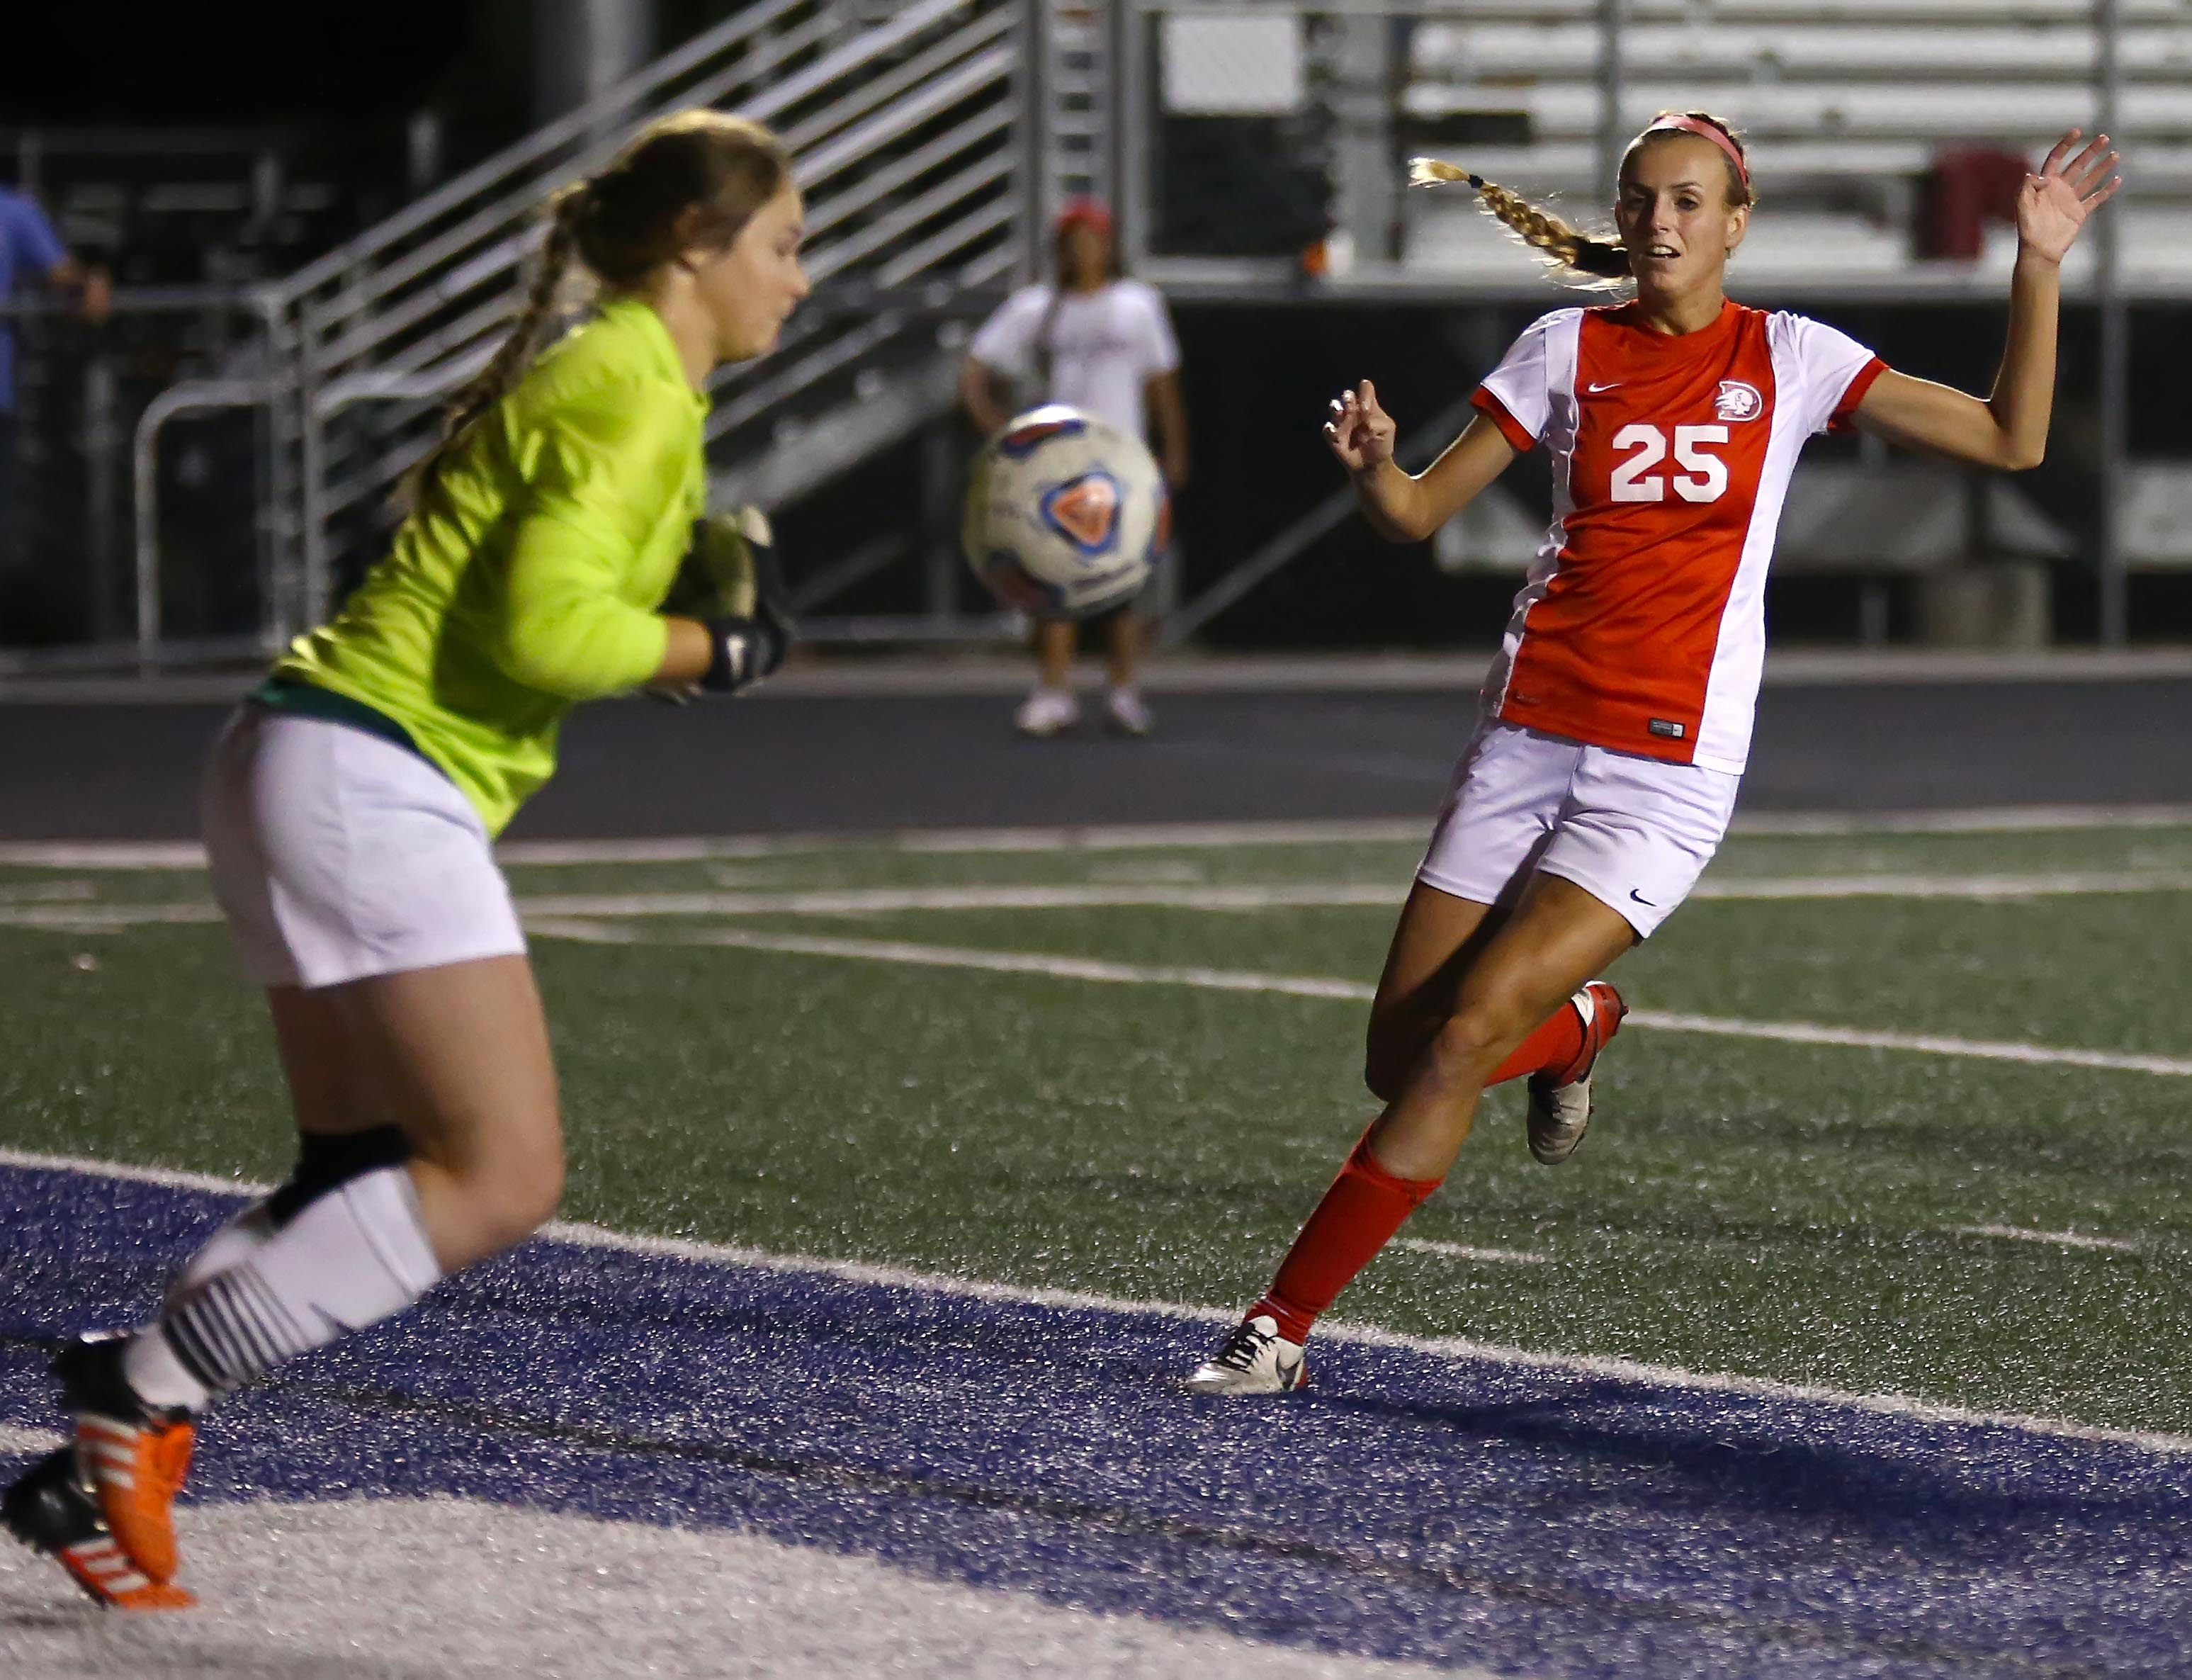 Dixie State's Bailey Kroll (25), Dixie State University vs. Dominican University, Womens Soccer, St. George, Utah, Oct. 29, 2016,   Photo by Robert Hoppie, ASPpix.com, St. George News